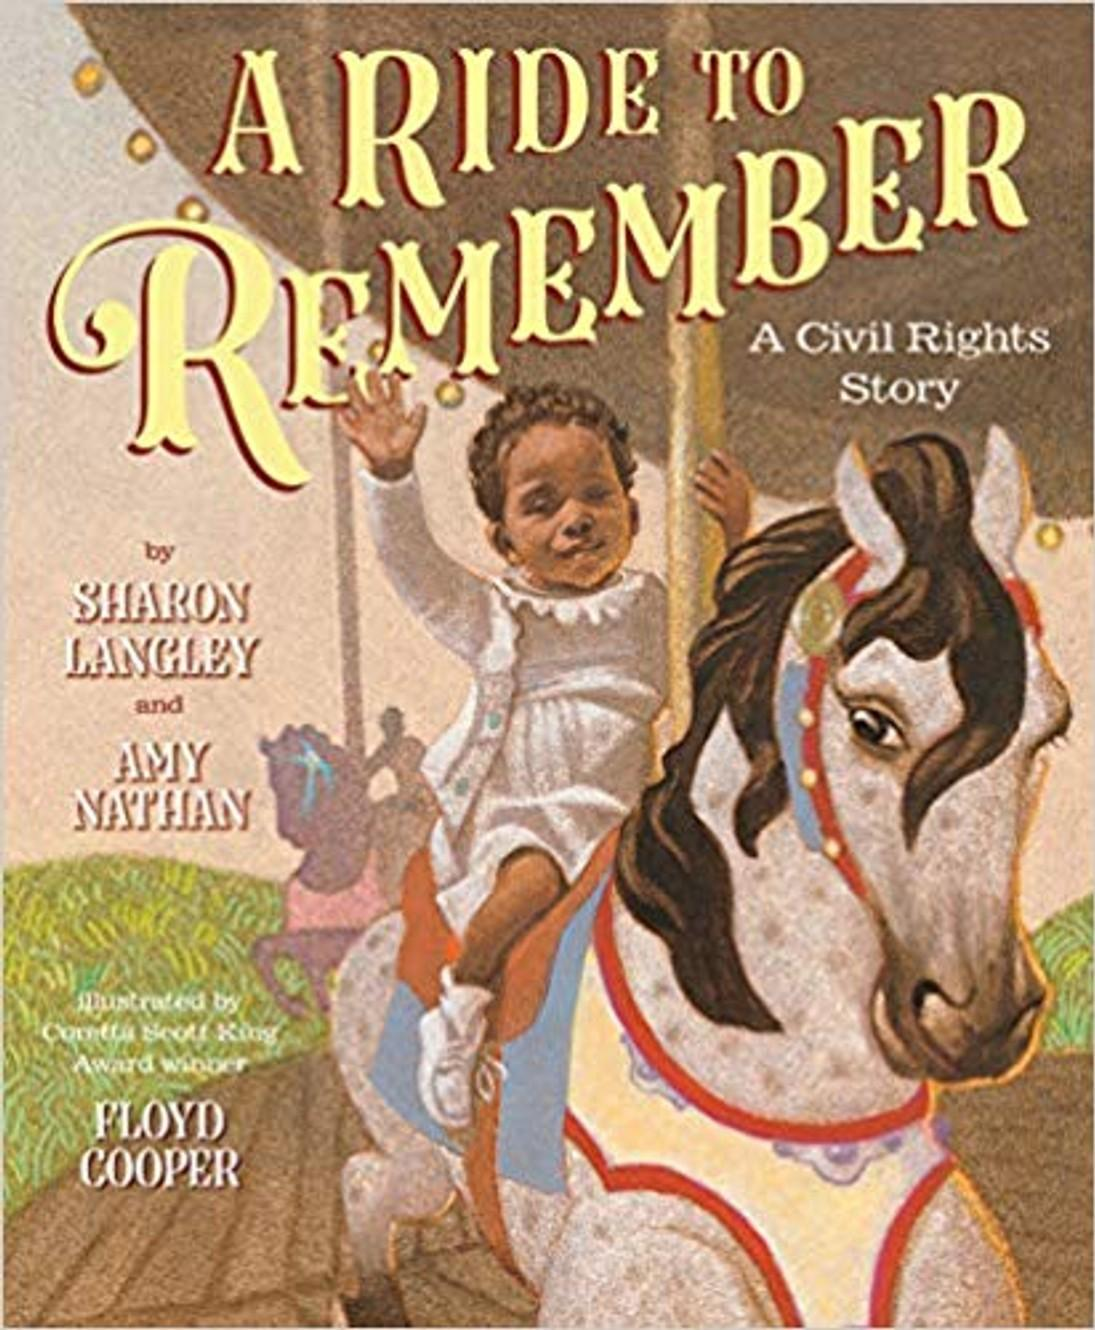 A Ride to Remember: Local Author Visit by Amy Nathan on Zoom